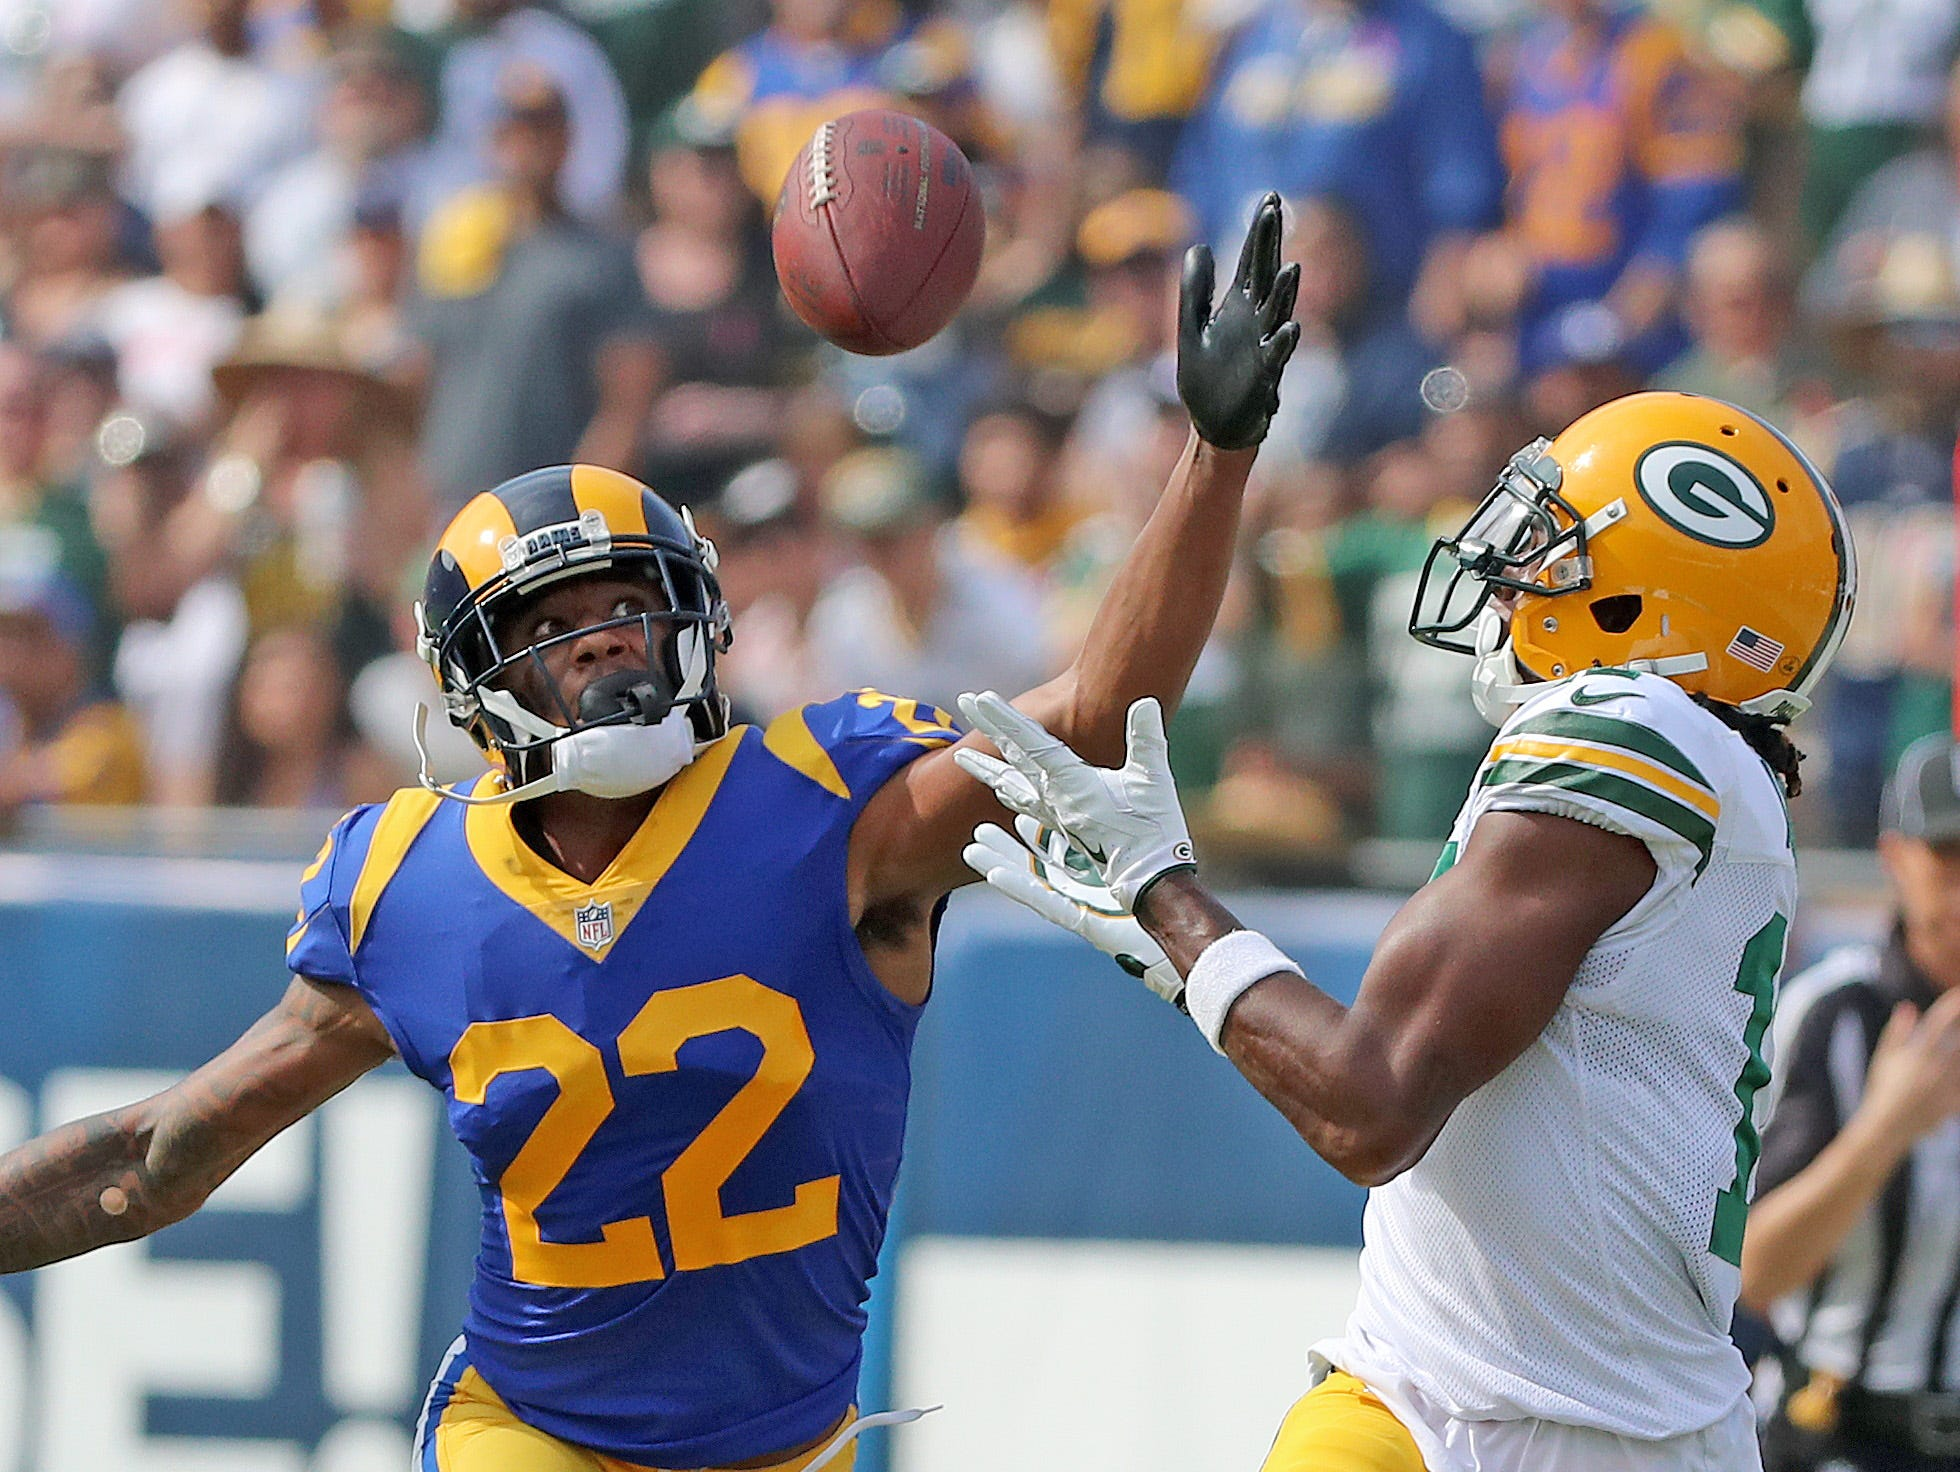 Green Bay Packers wide receiver Davante Adams (17) catcher a long pass against the LA Rams cornerback Marcus Peters (22) Sunday, October 28, 2018 at the Memorial Coliseum in Los Angeles, Cal. Jim Matthews/USA TODAY NETWORK-Wis